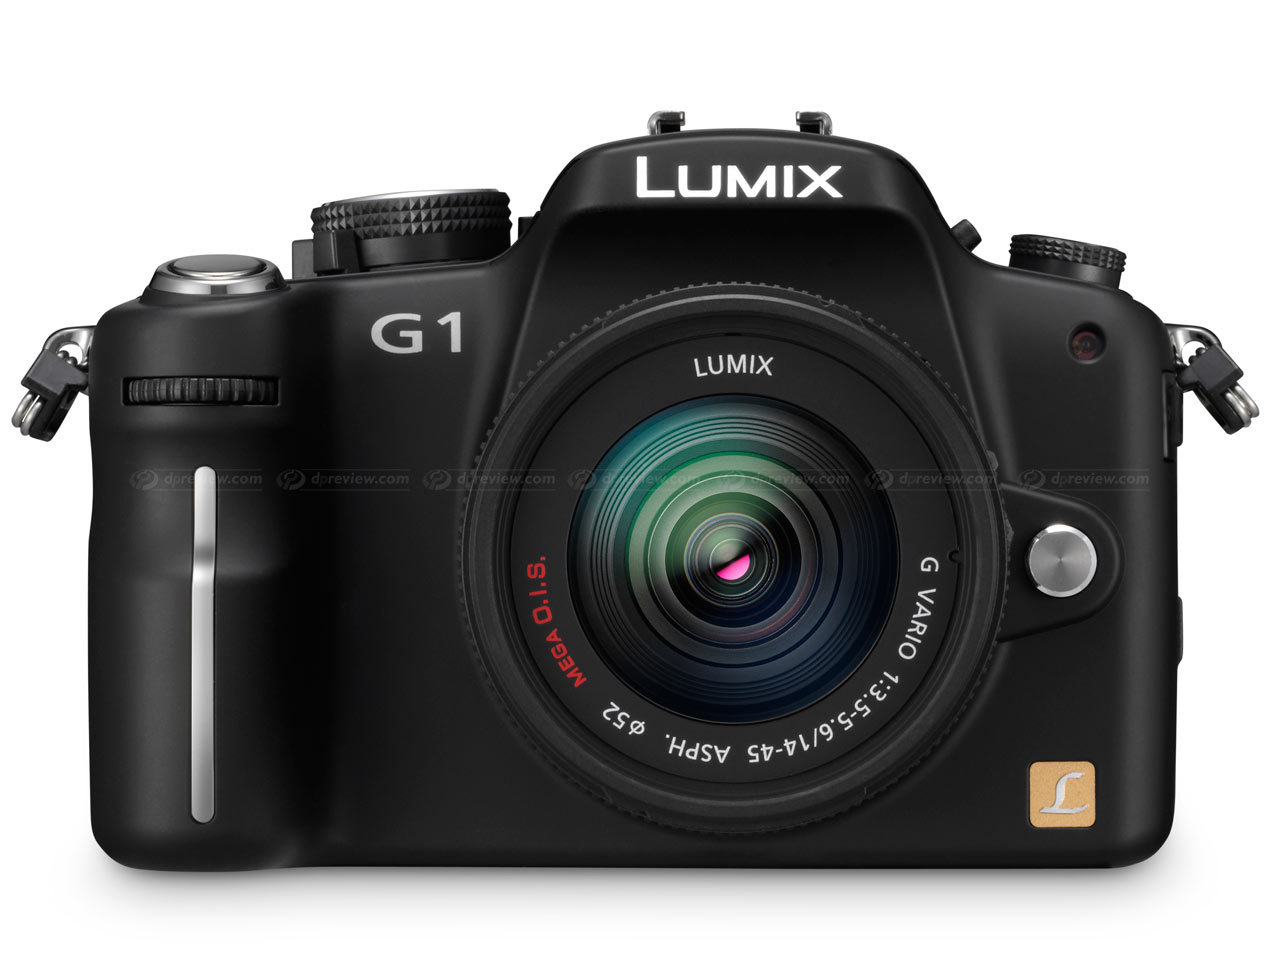 exclusive panasonic lumix g1 previewed digital photography review rh dpreview com Panasonic Lumix G1 Lenses Review Panasonic G1